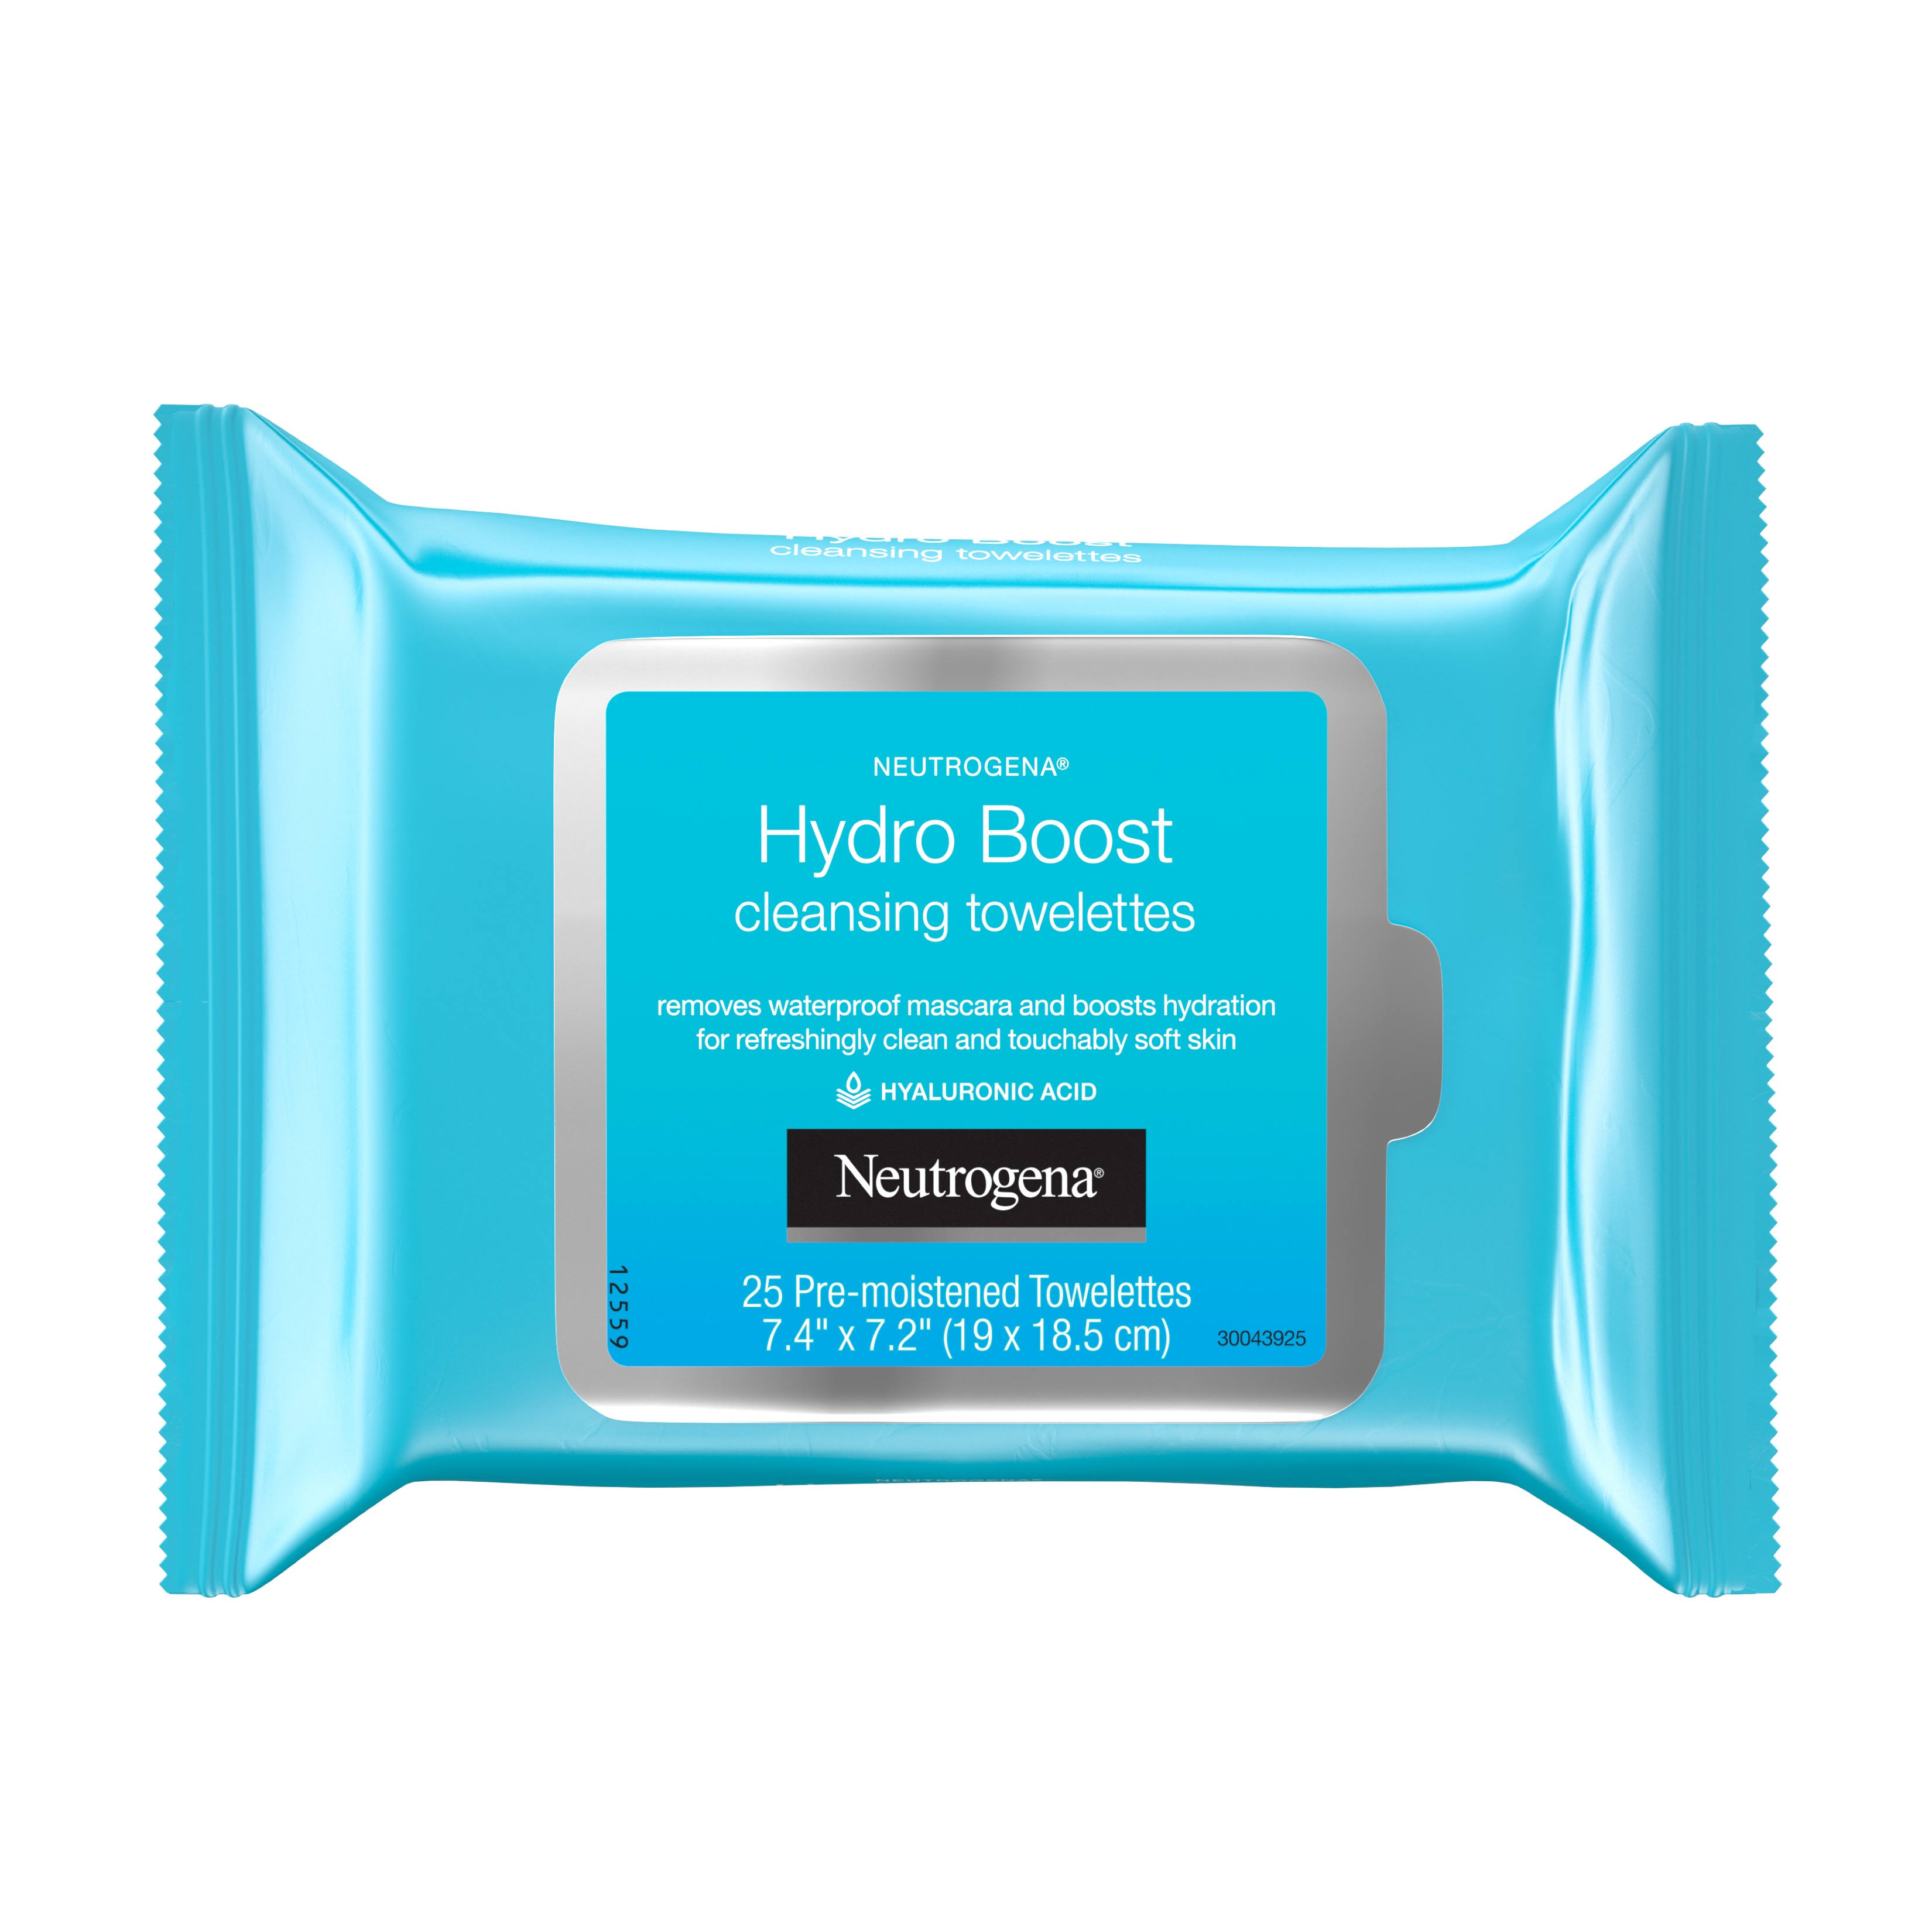 Neutrogena Towelettes, Cleansing, Hydro Boost - 25 towelettes